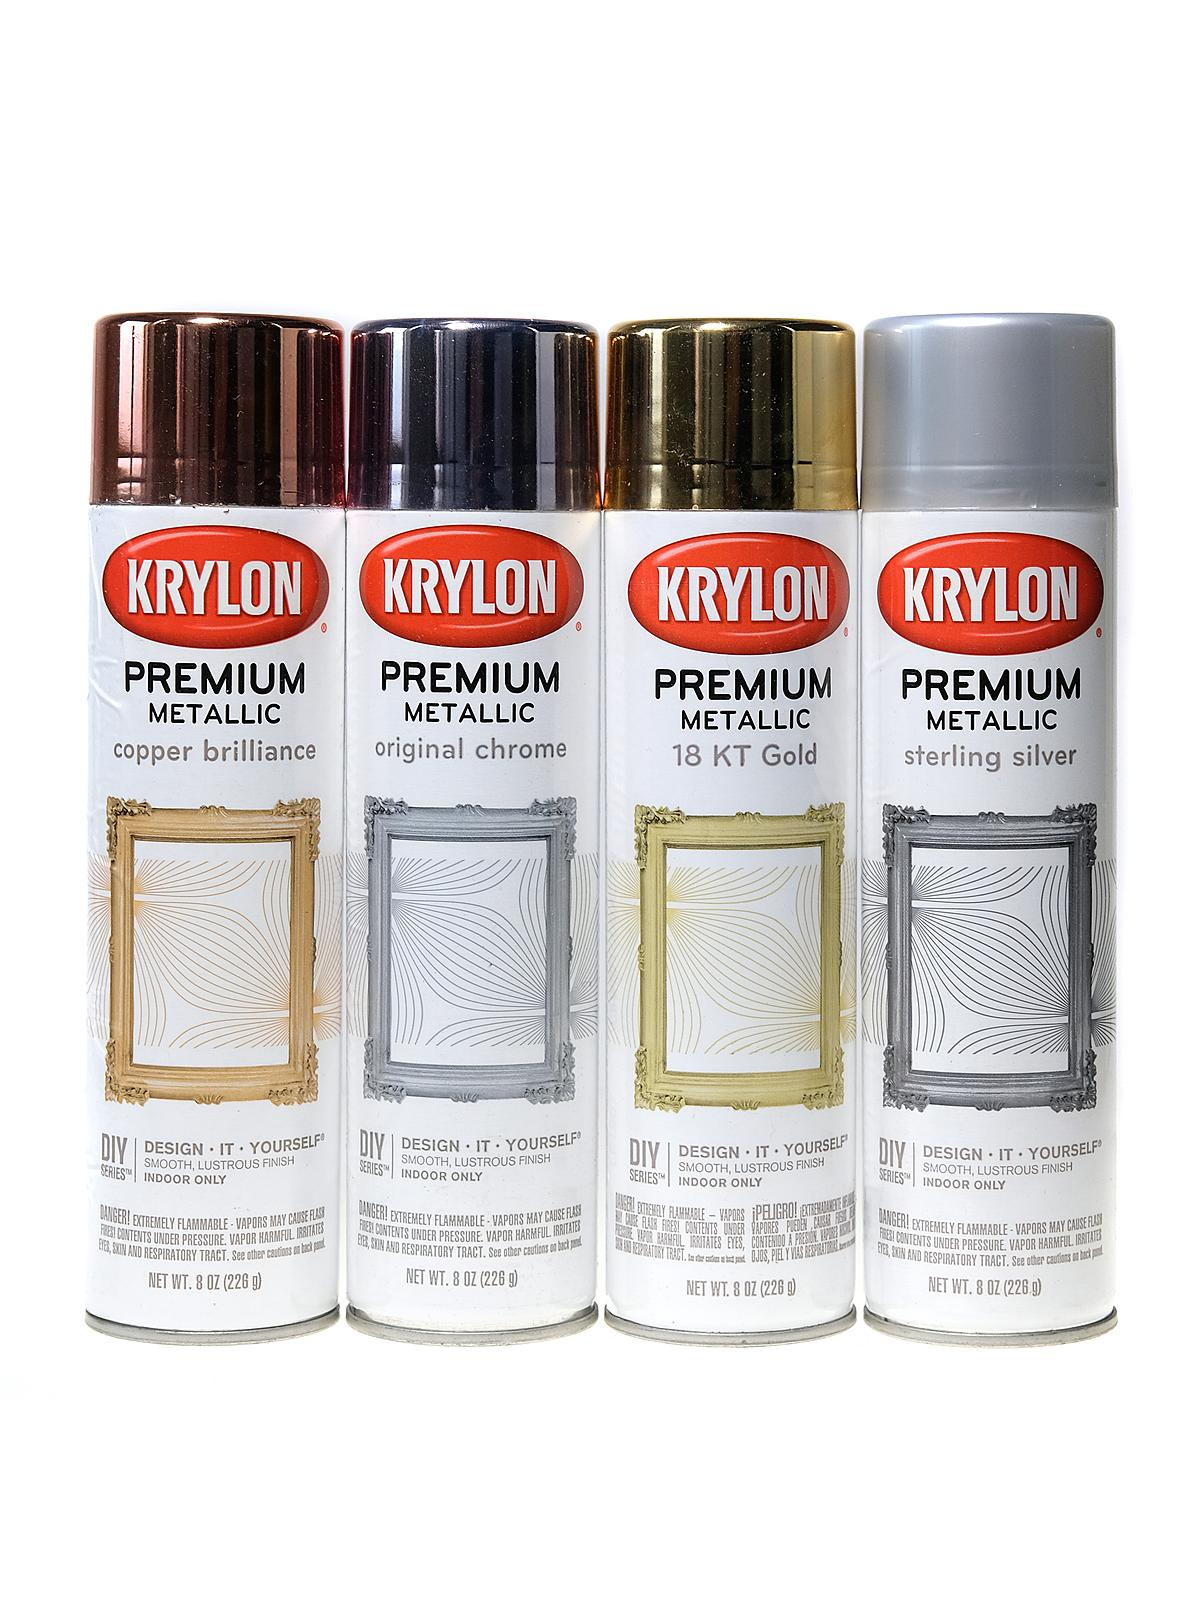 Krylon Premium Metallic Spray Paint